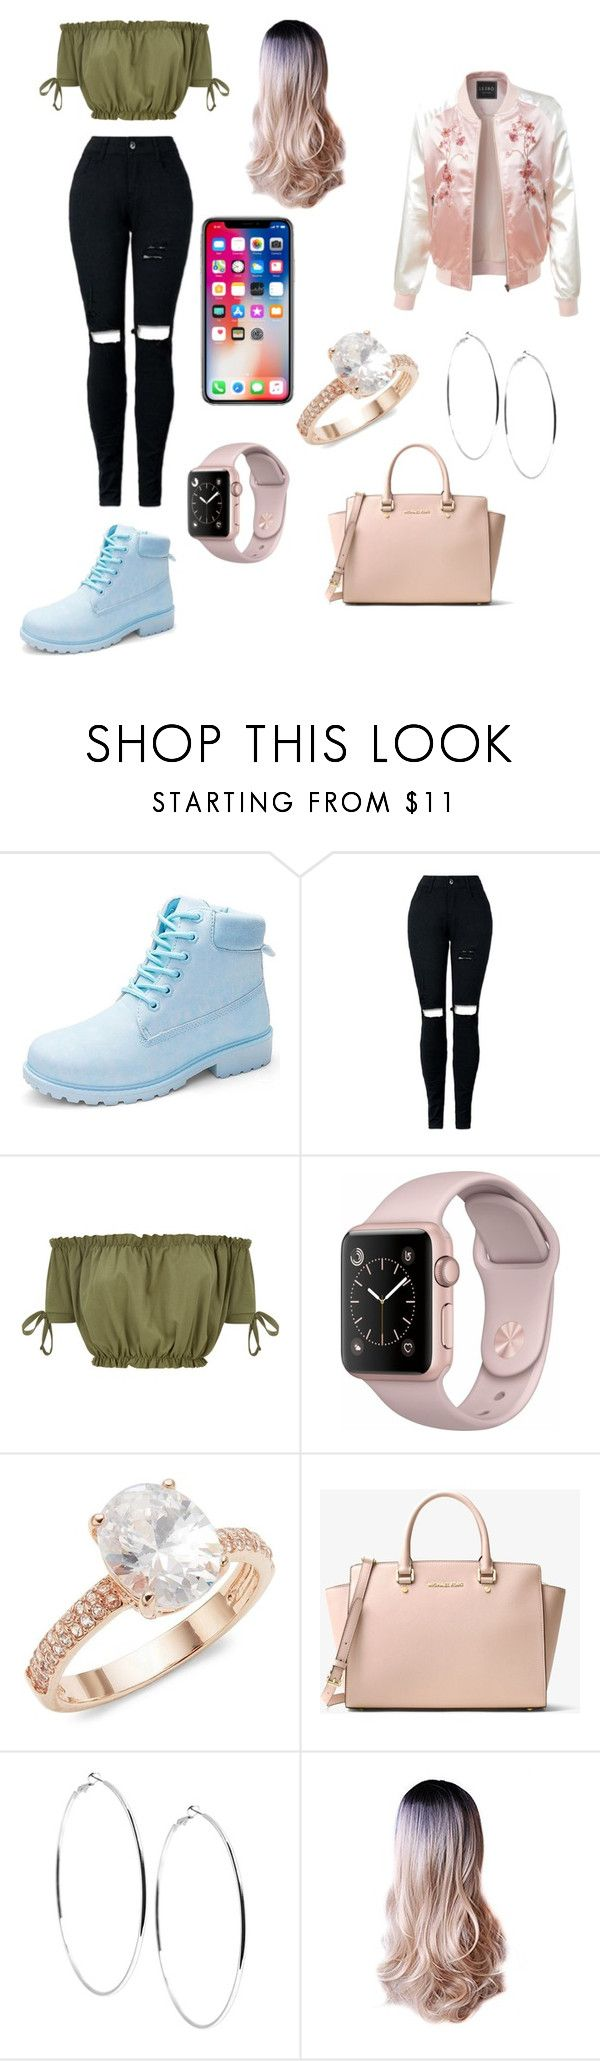 """Queen"" by alayanaomigos on Polyvore featuring Saks Fifth Avenue, MICHAEL Michael Kors, GUESS and LE3NO"